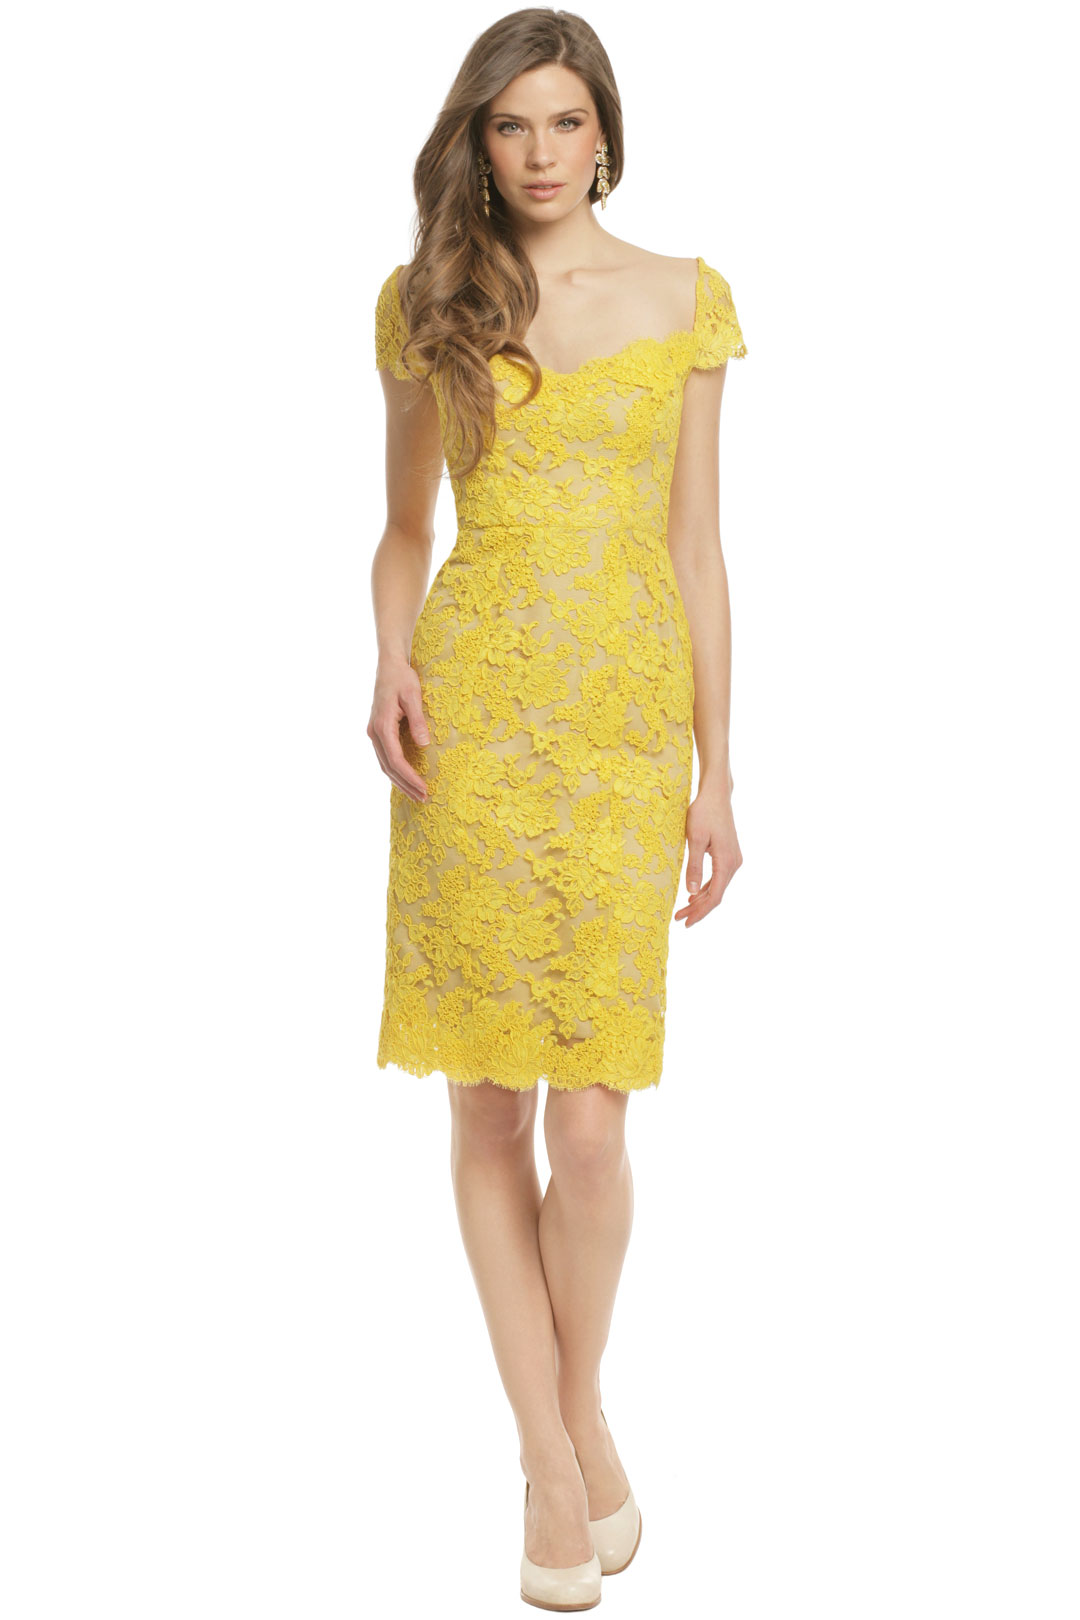 Canary Bennet Dress by Reem Acra at $300 | Rent The Runway